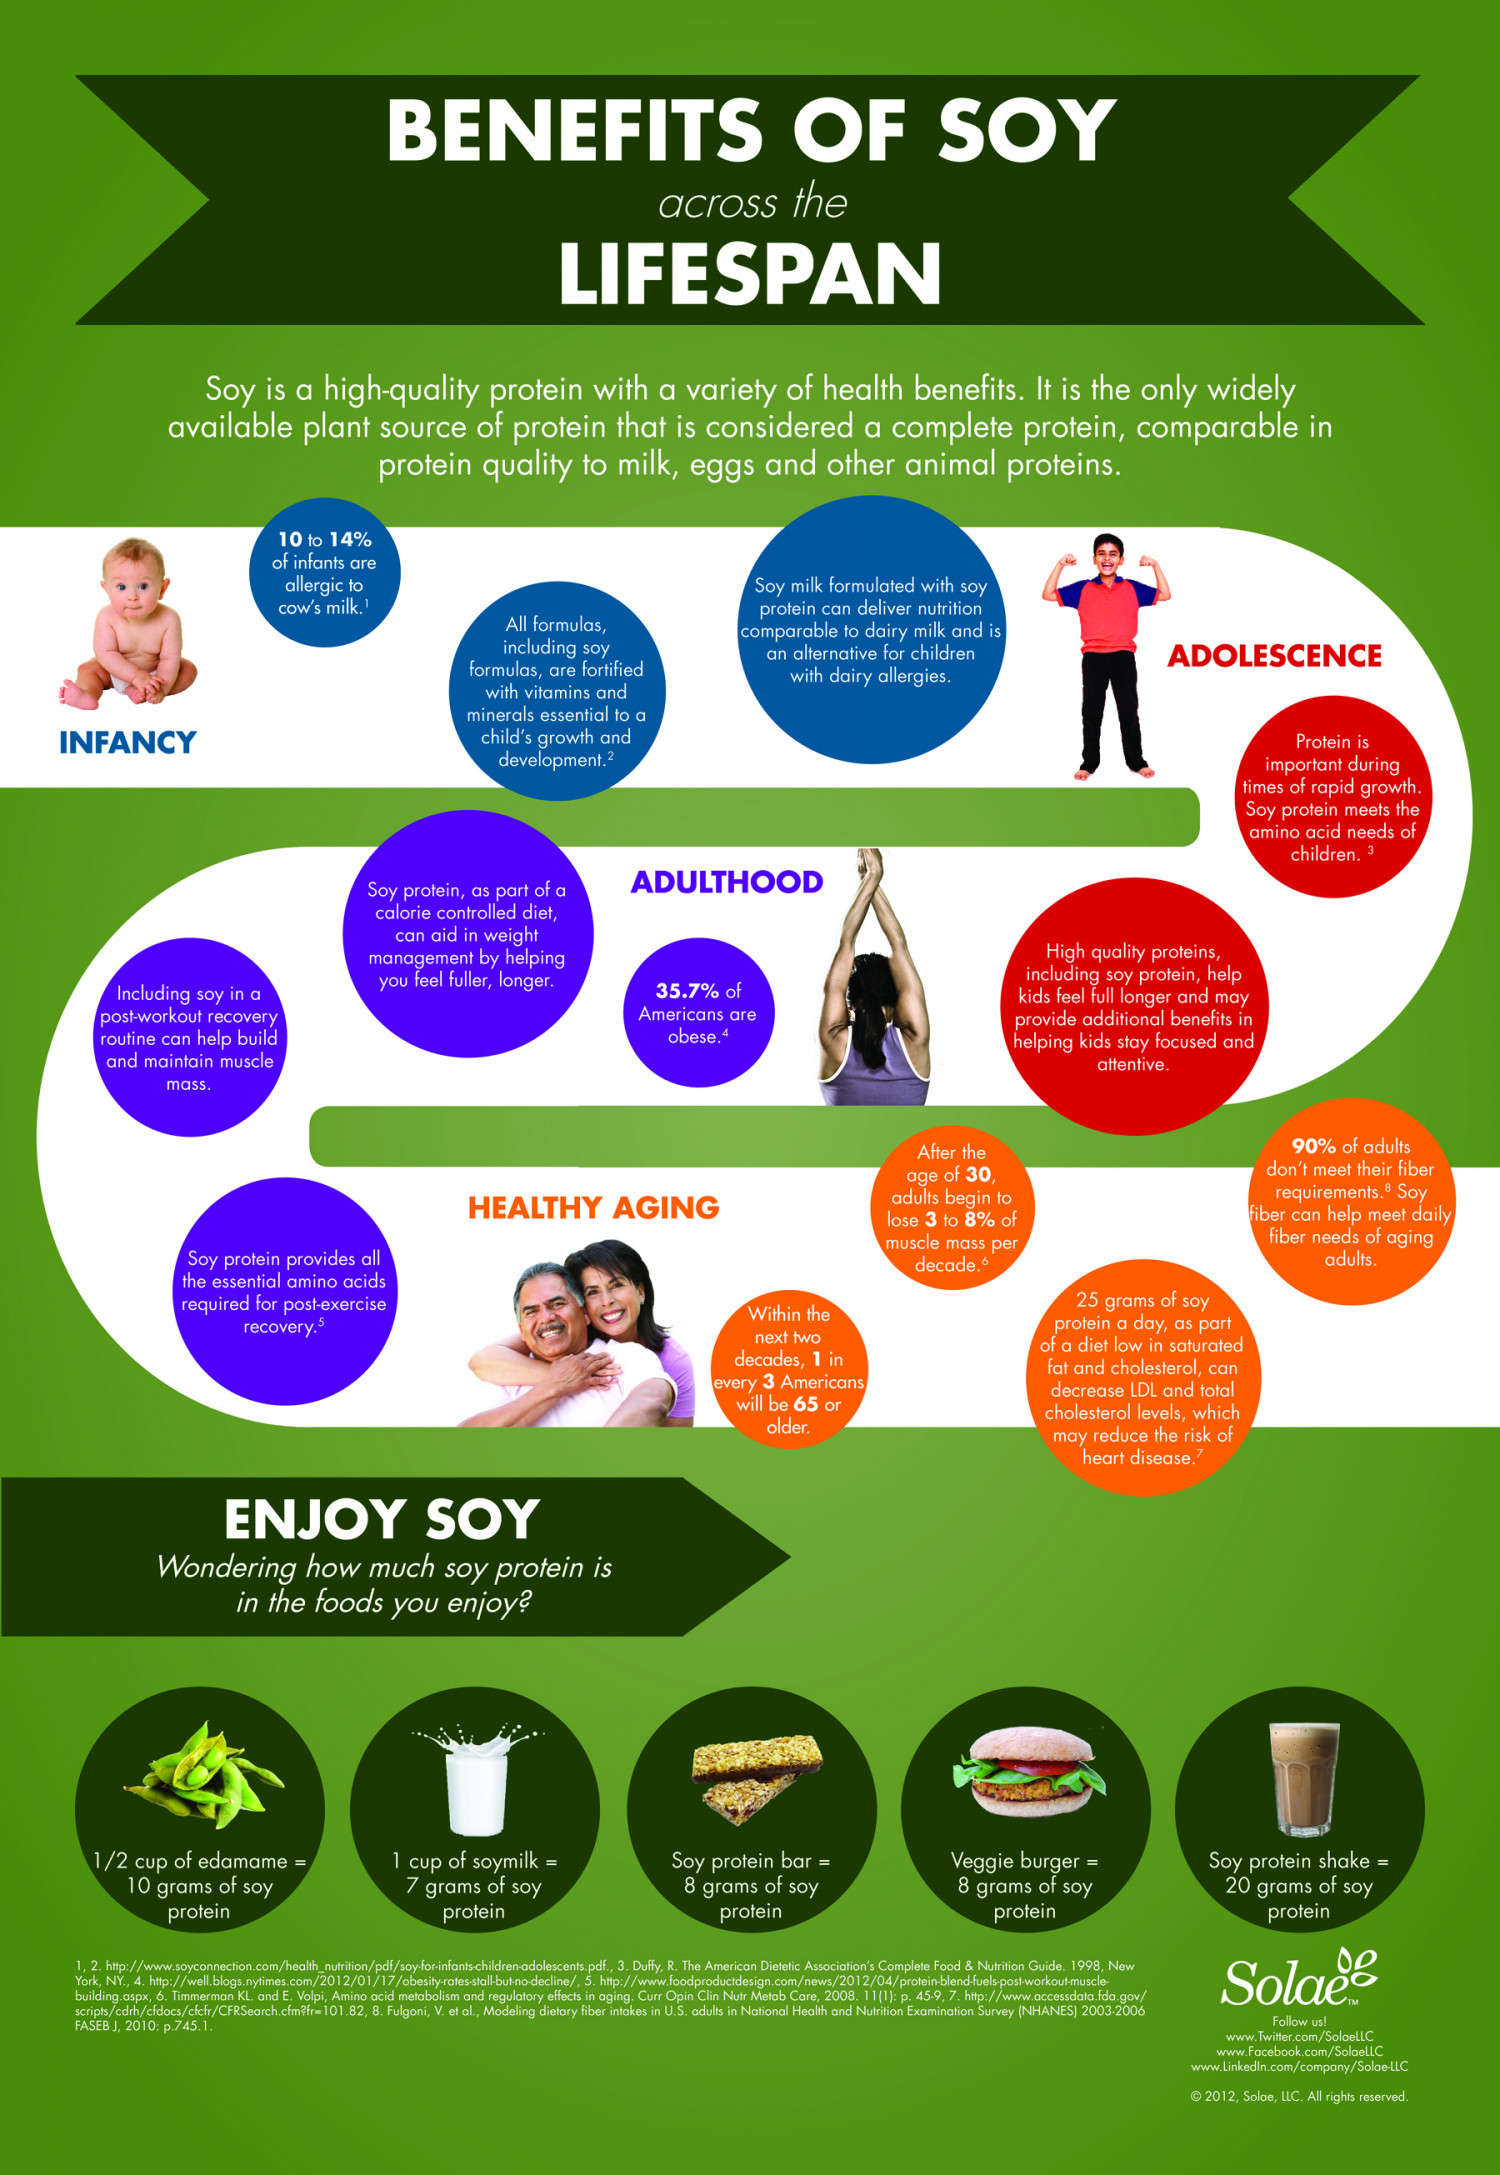 Soy Across the Lifespan Infographic